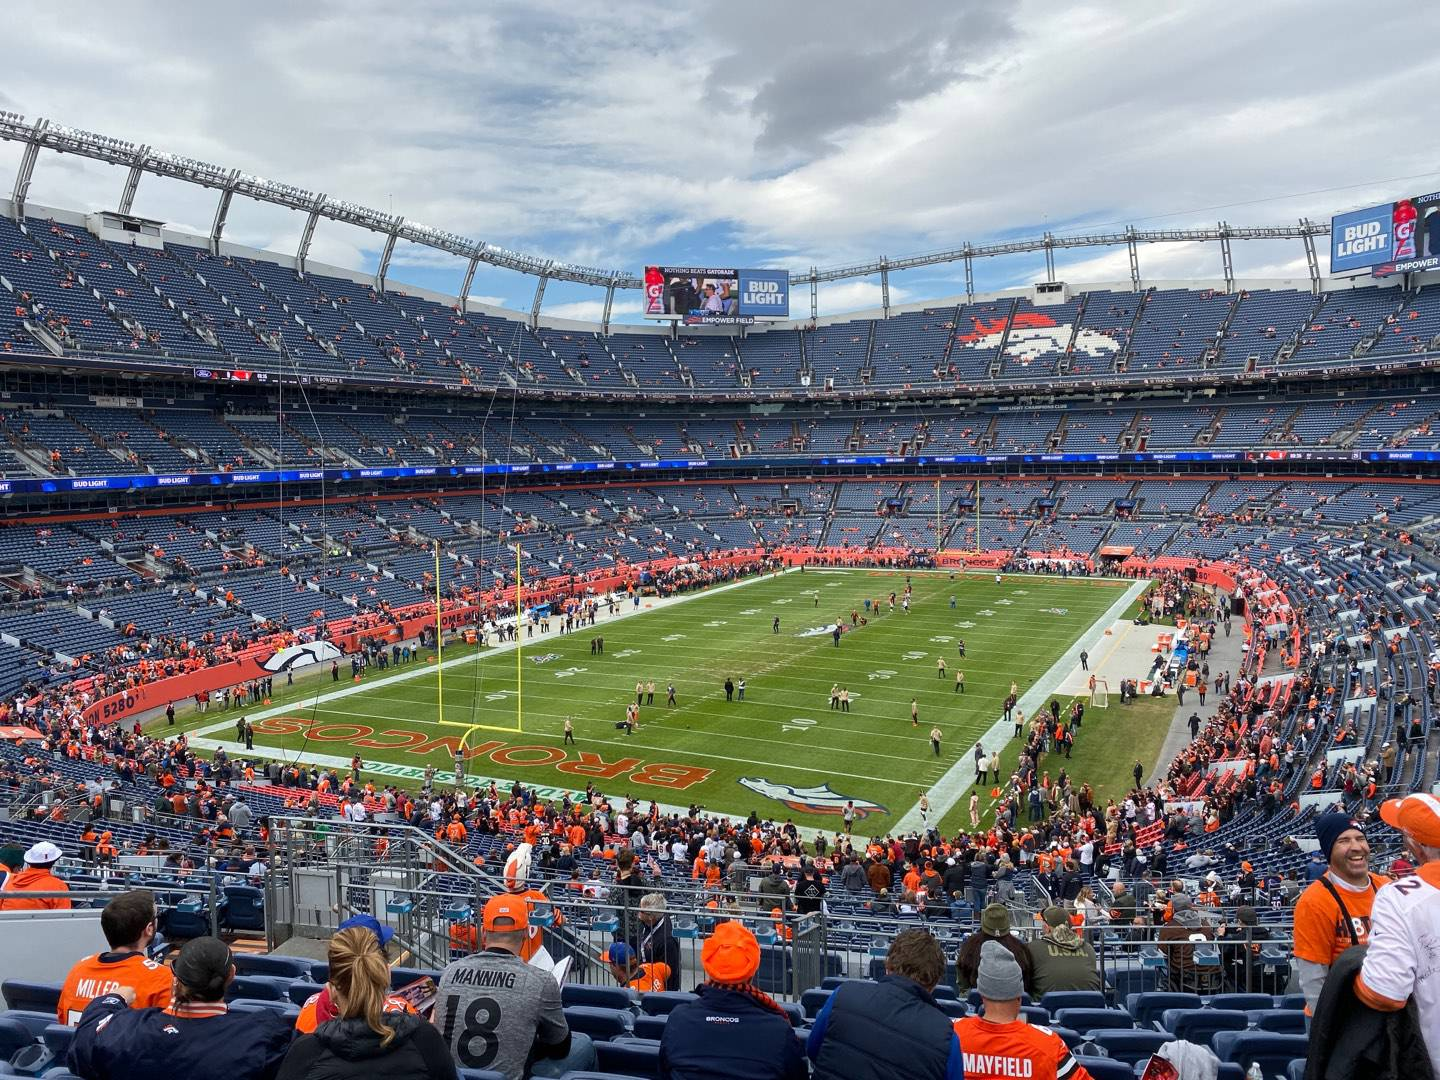 Empower Field at Mile High Stadium Section 229 Row 14 Seat 16